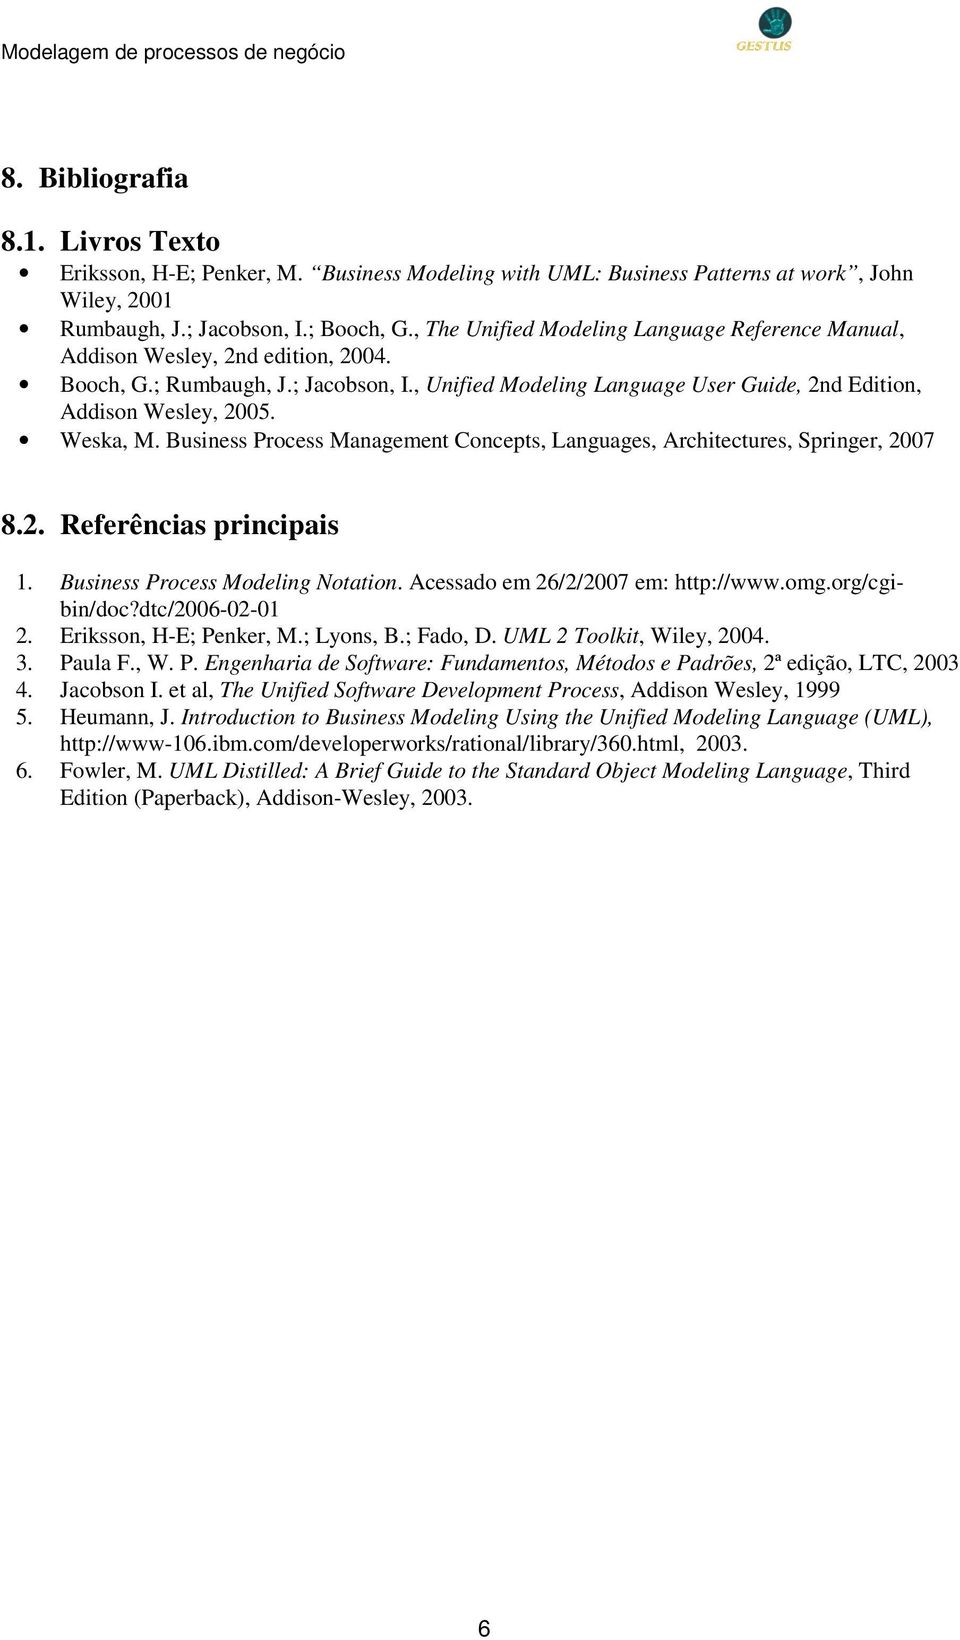 Weska, M. Business Process Management Concepts, Languages, Architectures, Springer, 2007 8.2. Referências principais 1. Business Process Modeling Notation. Acessado em 26/2/2007 em: http://www.omg.